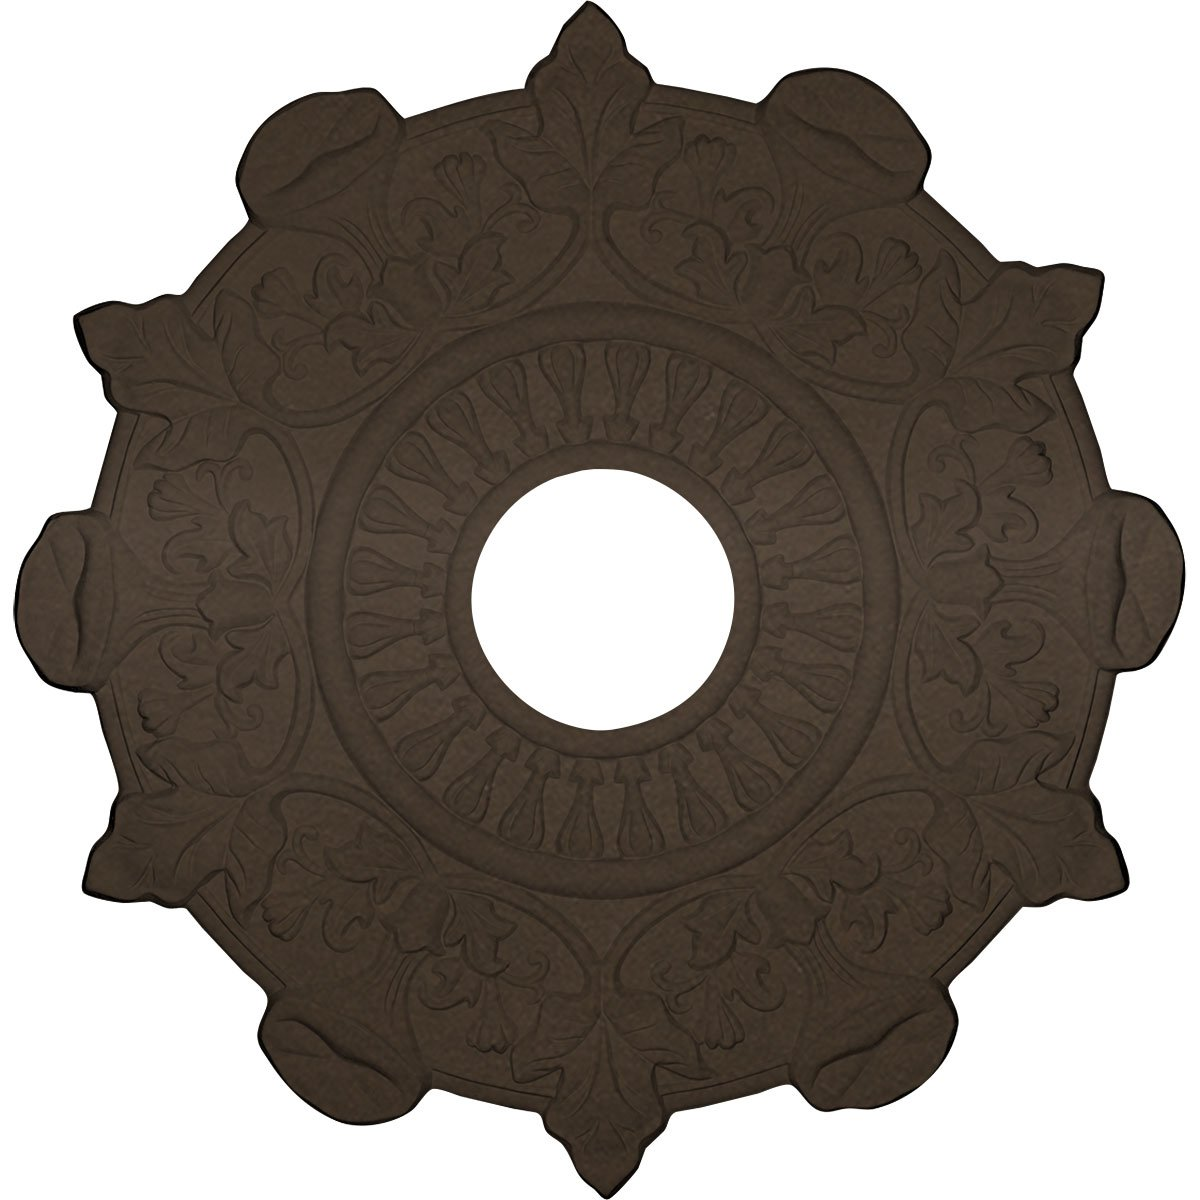 Ekena Millwork CM17PRBZS Preston Ceiling Medallion fits Canopies up to 4'', Bronze by Ekena Millwork